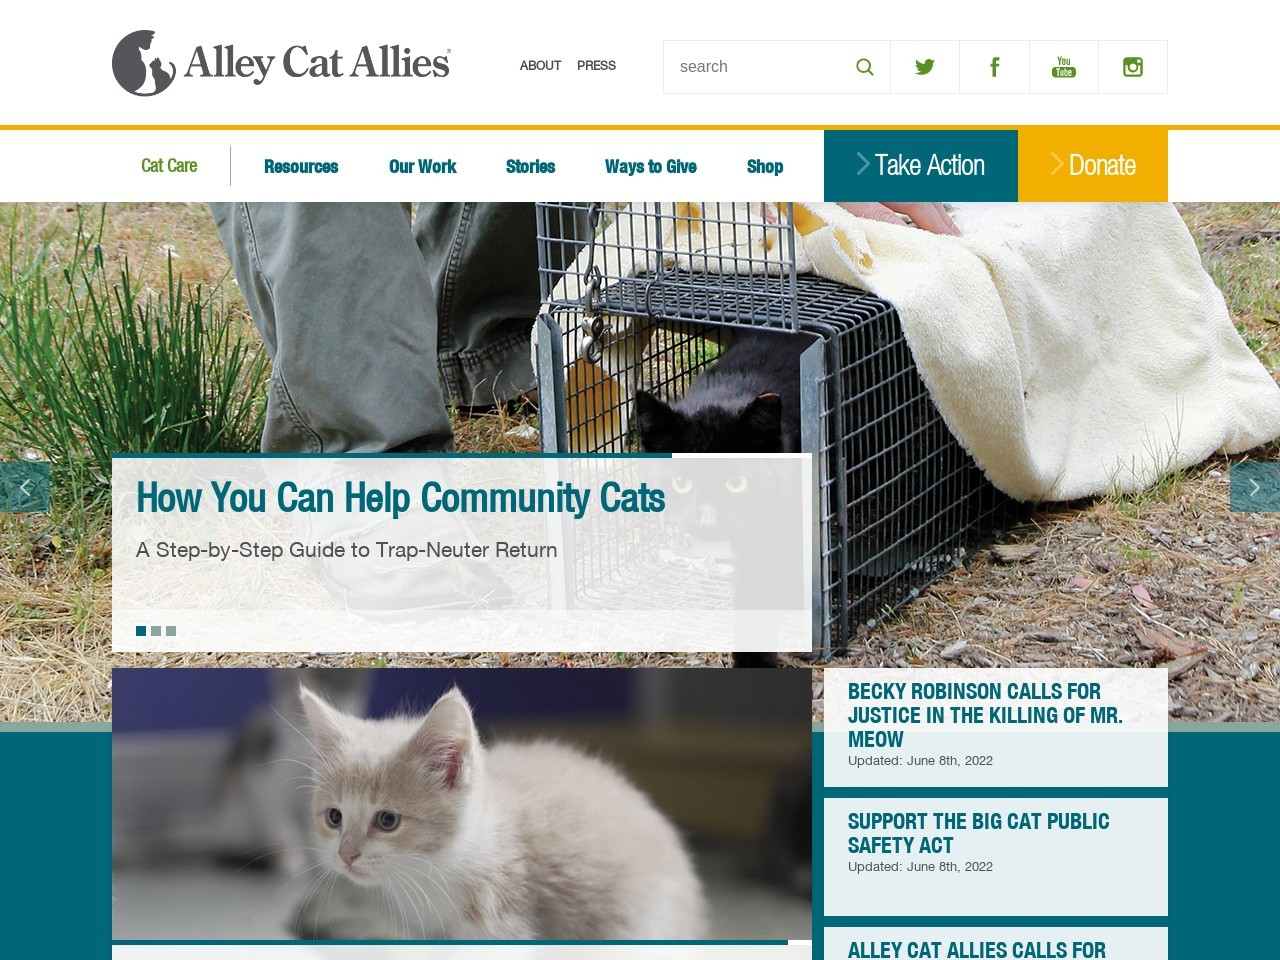 alleycat.org